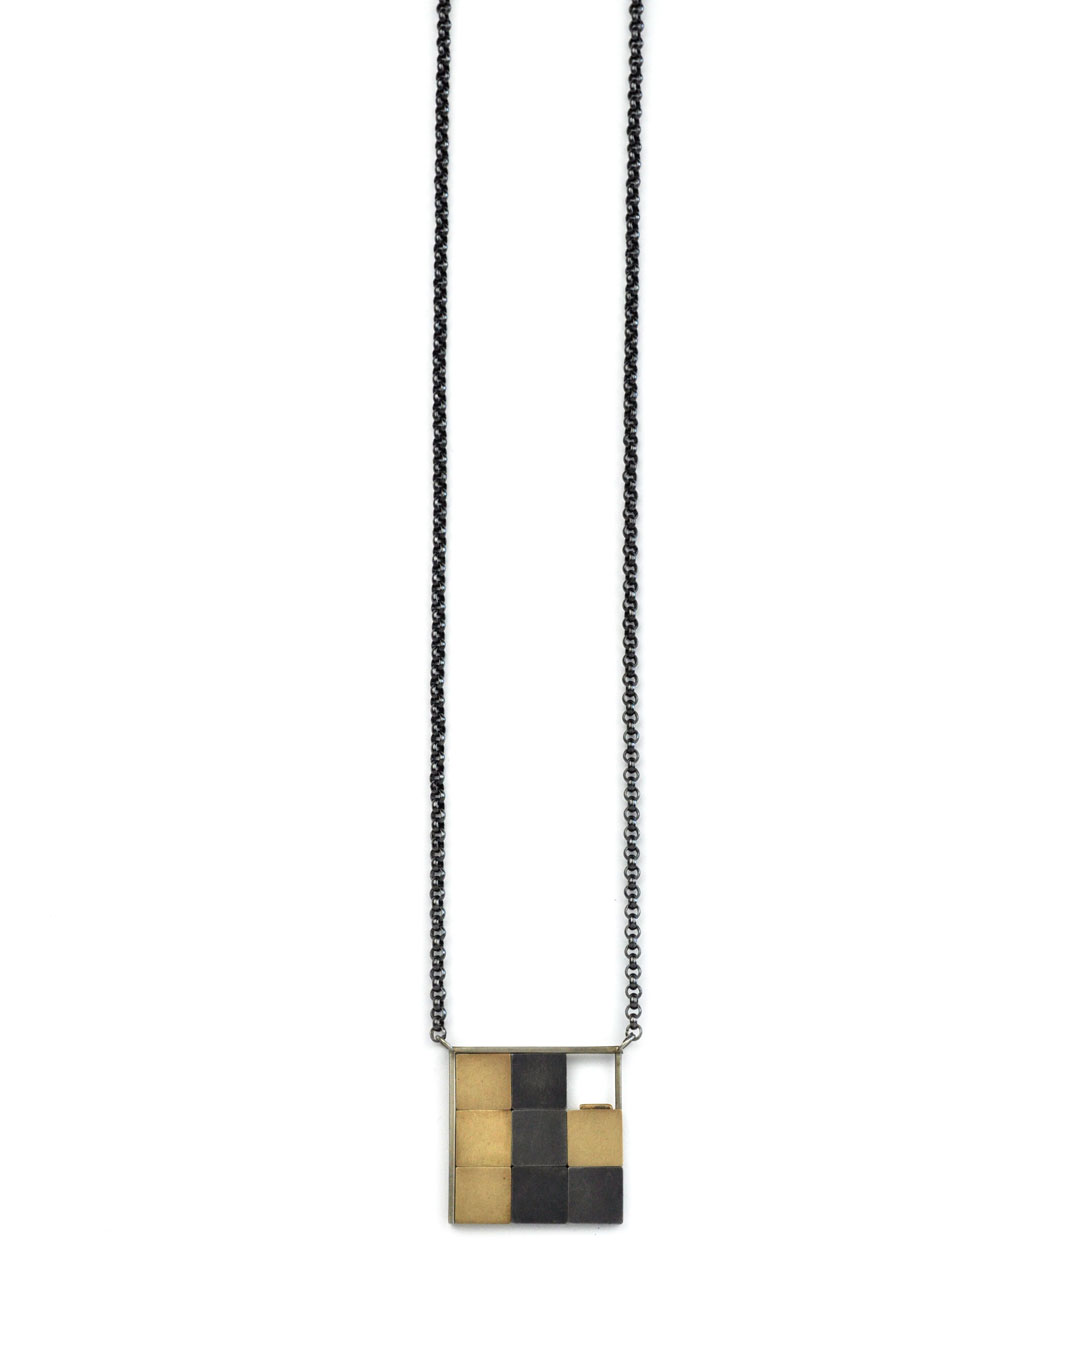 Herman Hermsen, Expensive Game, 1995, pendant; 18ct white gold, 18ct yellow gold, silver, 440 x 100 x 3 mm, €3650